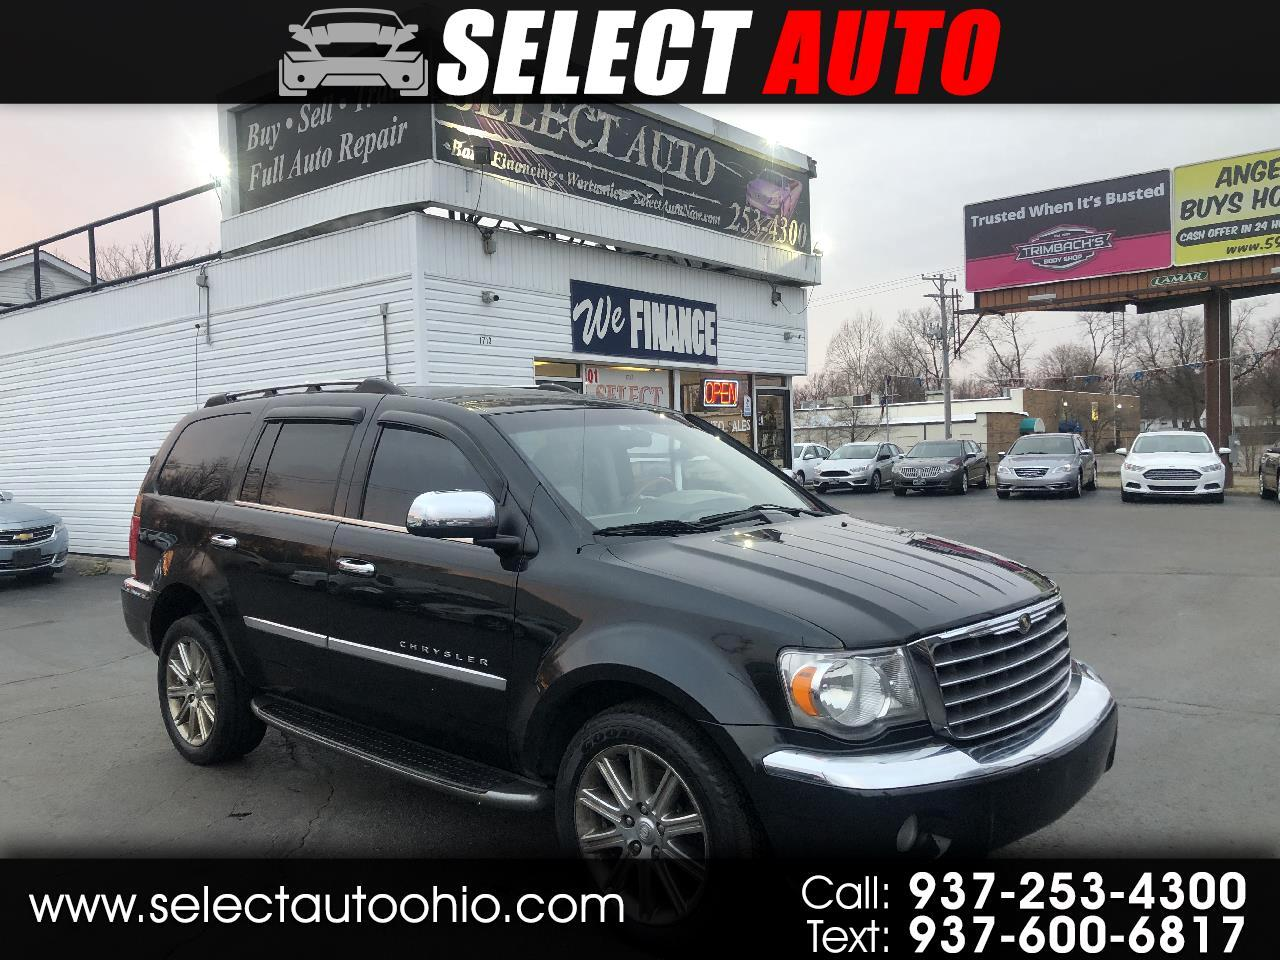 2007 Chrysler Aspen Limited 4WD